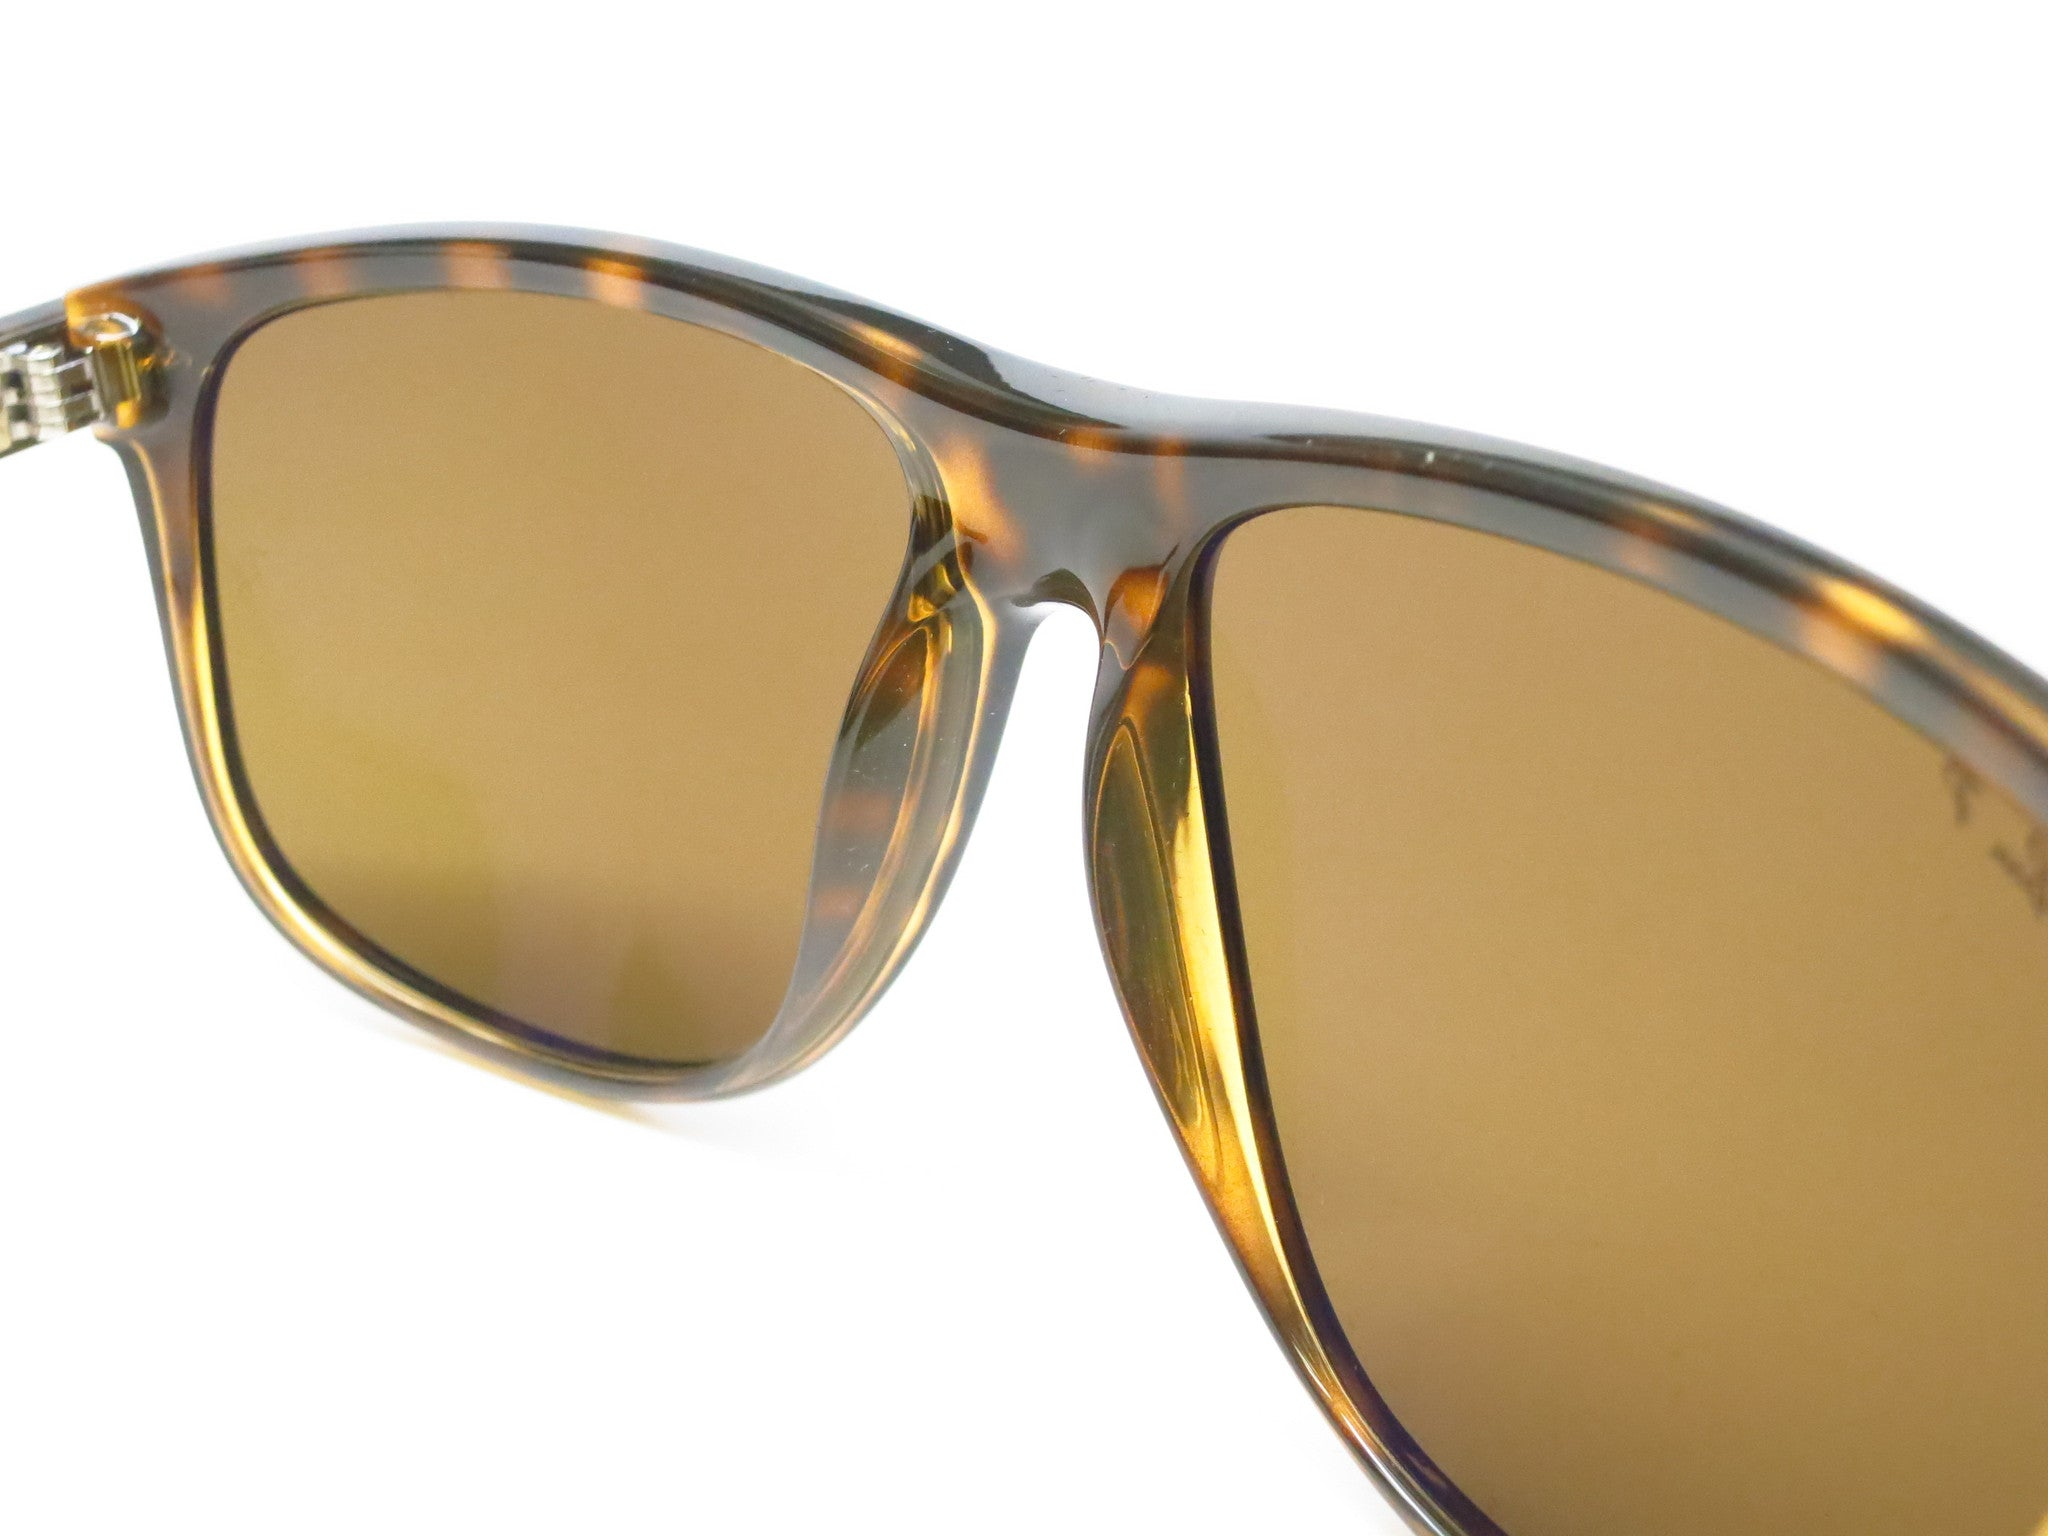 7a402fa4064 Ray Ban Wayfarer 2 Polarized Safety « Heritage Malta